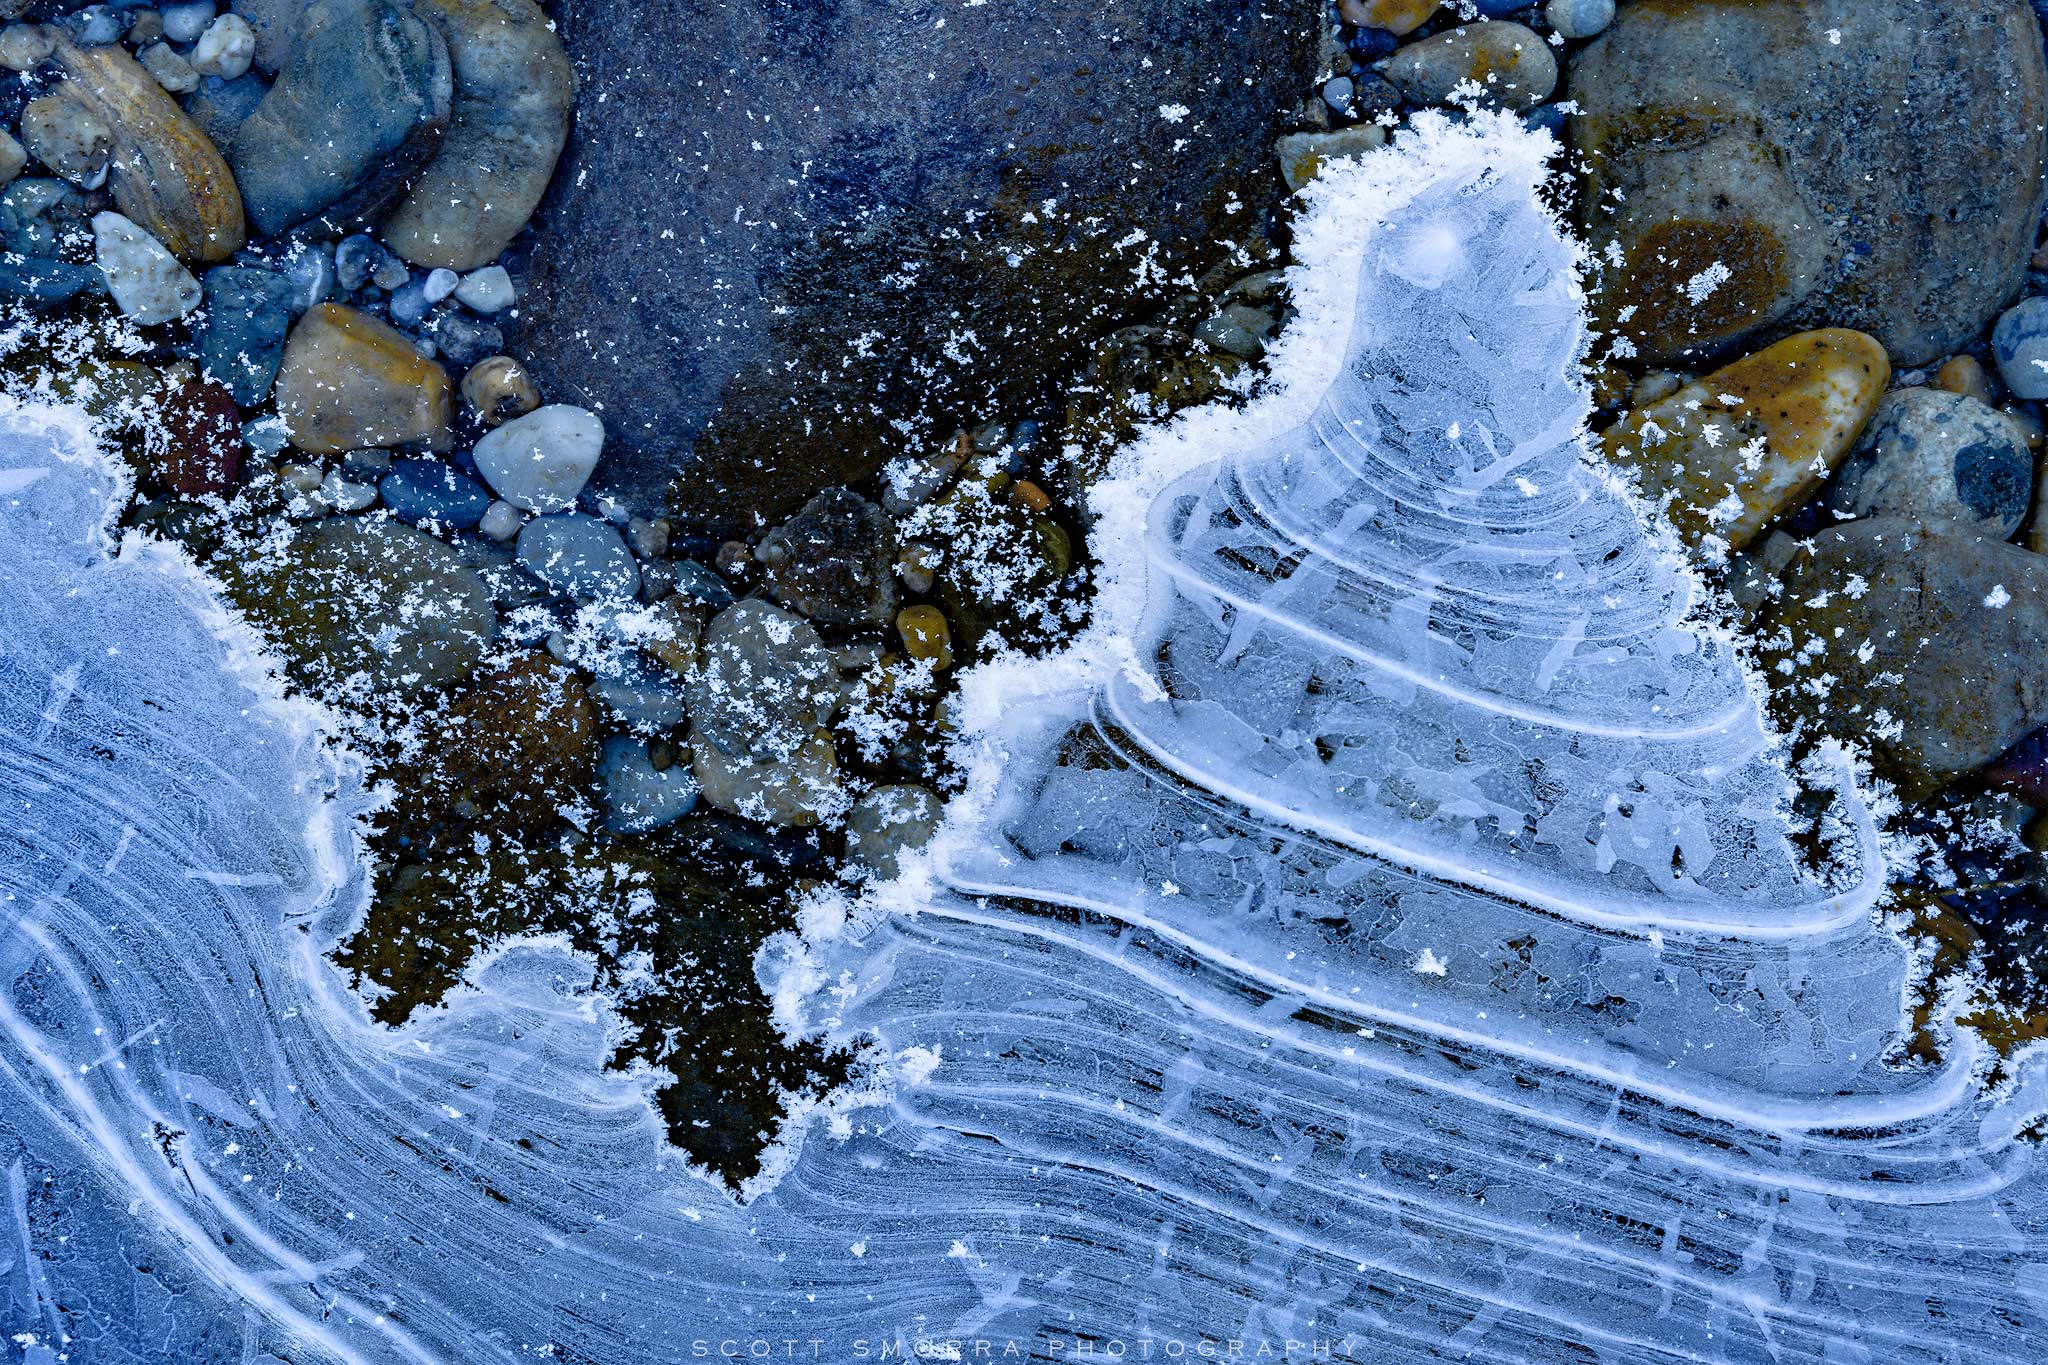 Banff National Park, Canadian Rockies, winter, ice, abstract, photo